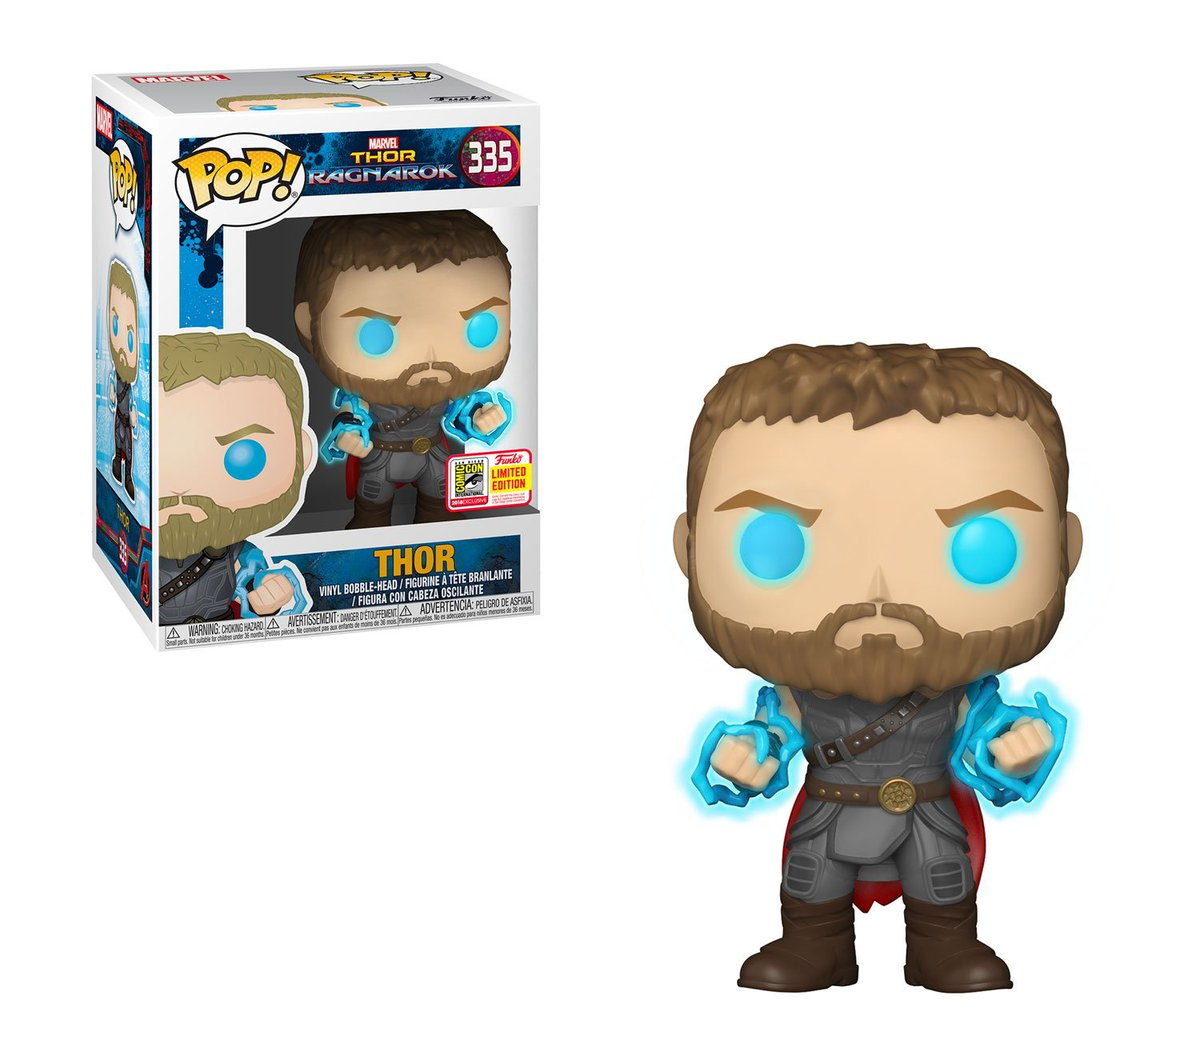 RT & follow @OriginalFunko for a chance to WIN a #SDCC 2018 exclusive Thor Pop!